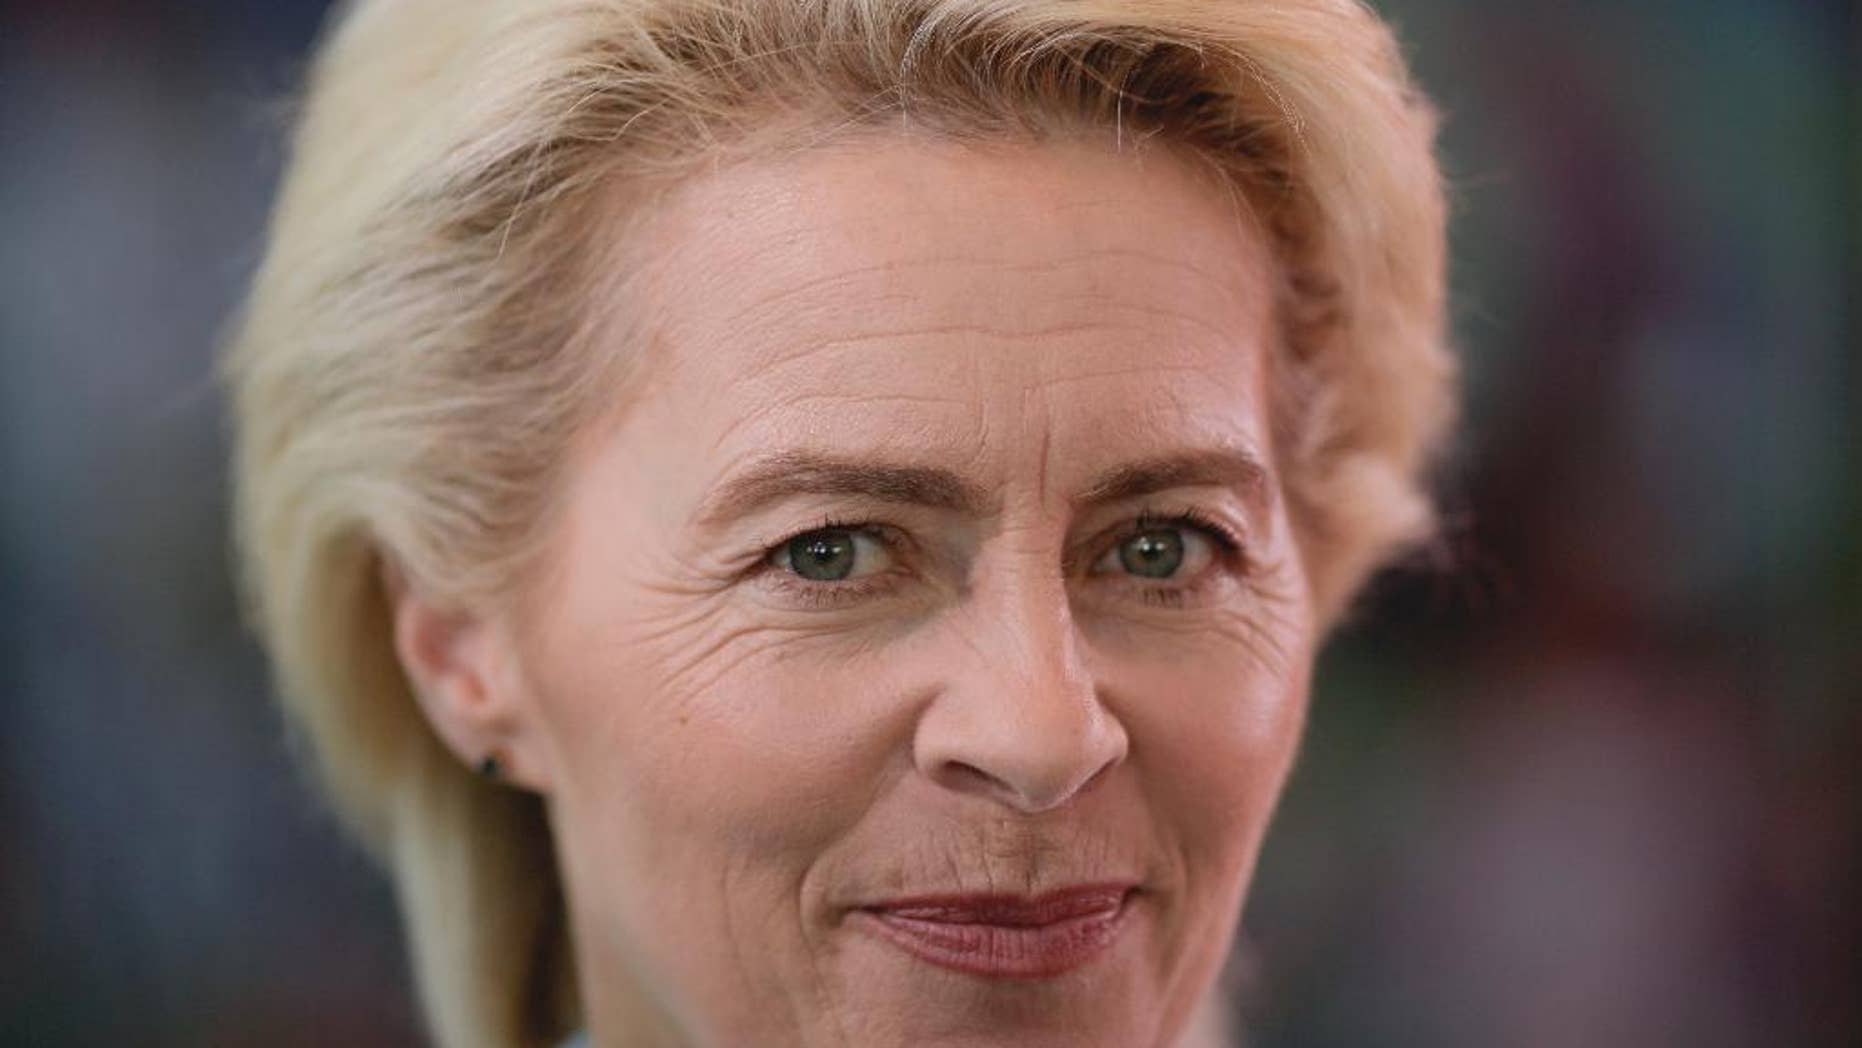 FILE - In this June 8, 2016 file photo German Defense Minister Ursula von der Leyen arrives for the cabinet meeting of the German government at the chancellery in Berlin. Von der Leyen wants to visit a Turkish base where German troops are stationed _ an announcement that comes days after a German deputy defense minister and lawmakers were denied a visit there by Turkey. (AP Photo/Markus Schreiber, file)